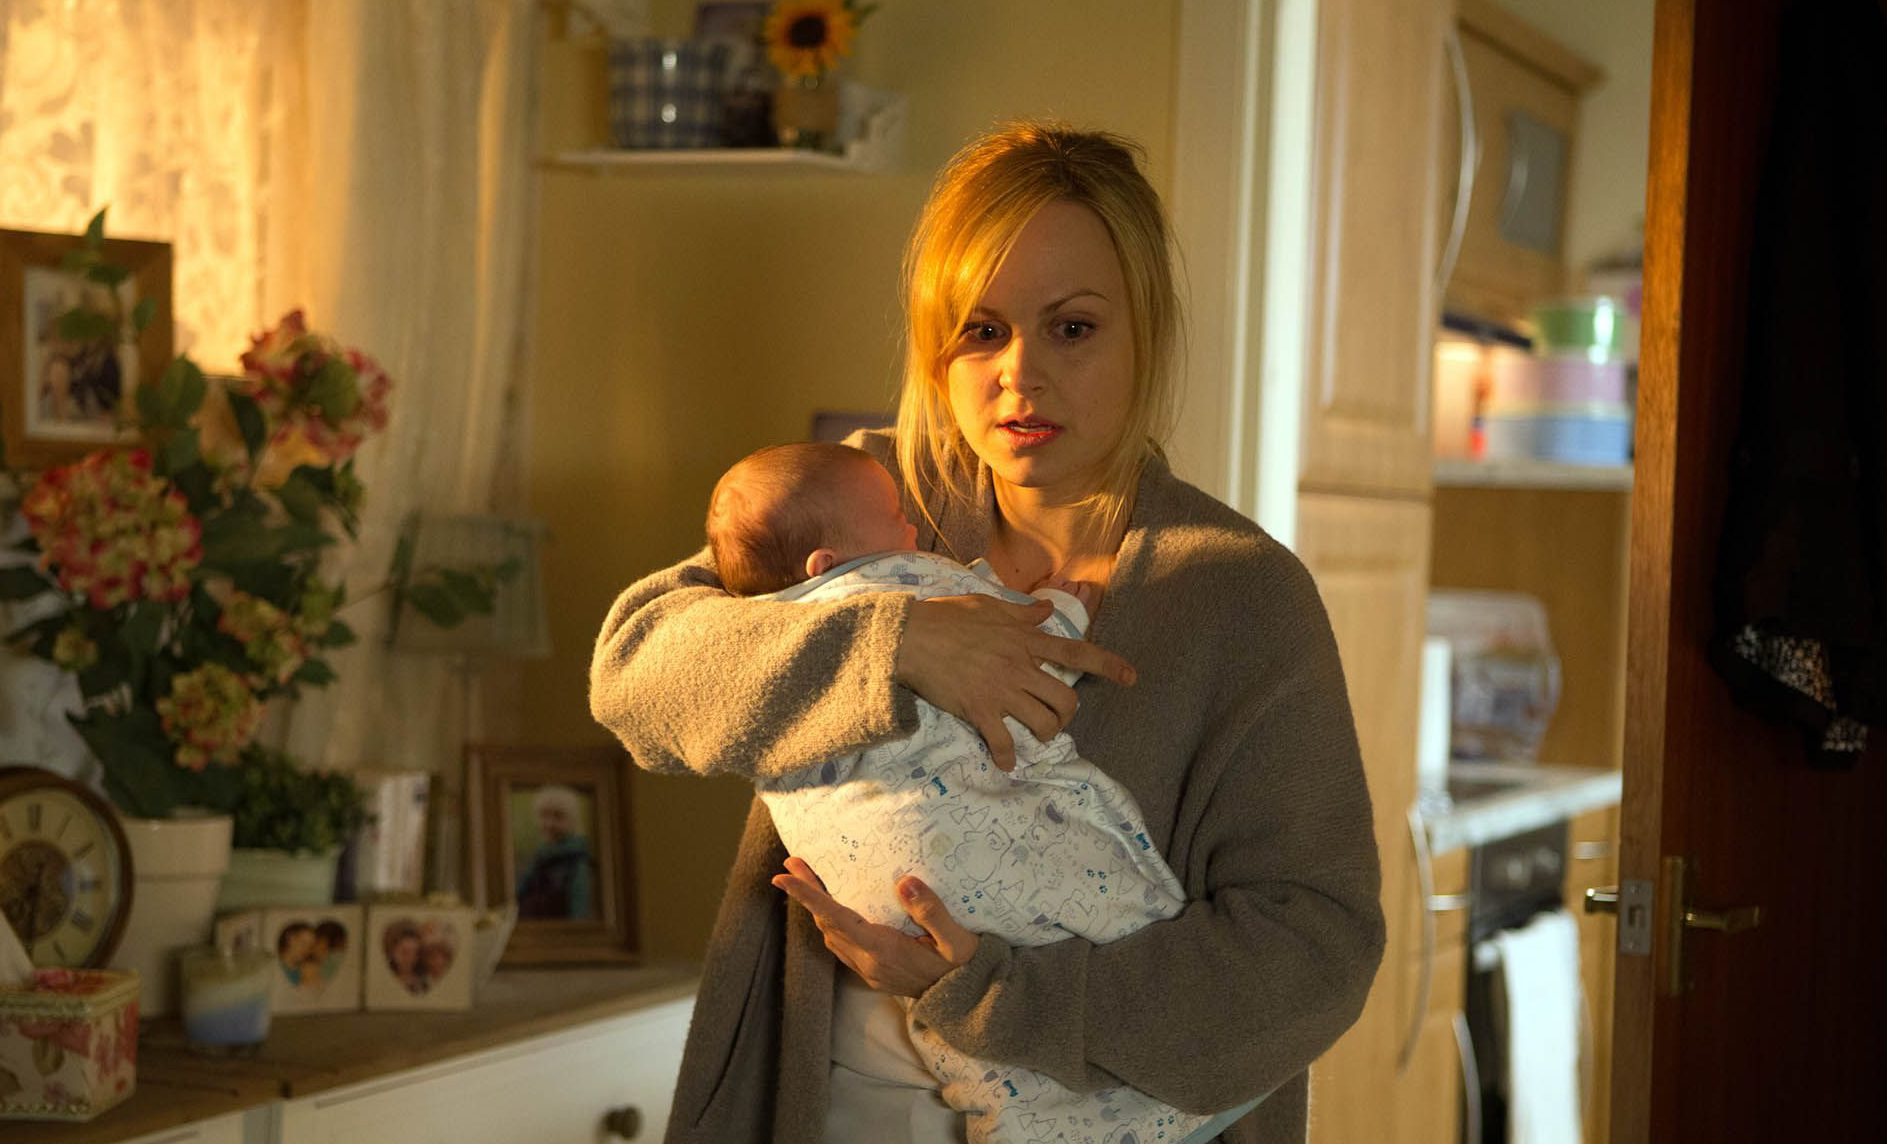 Tina O'Brien thinks 'it's a shame' fans compare Corrie and EastEnders storylines